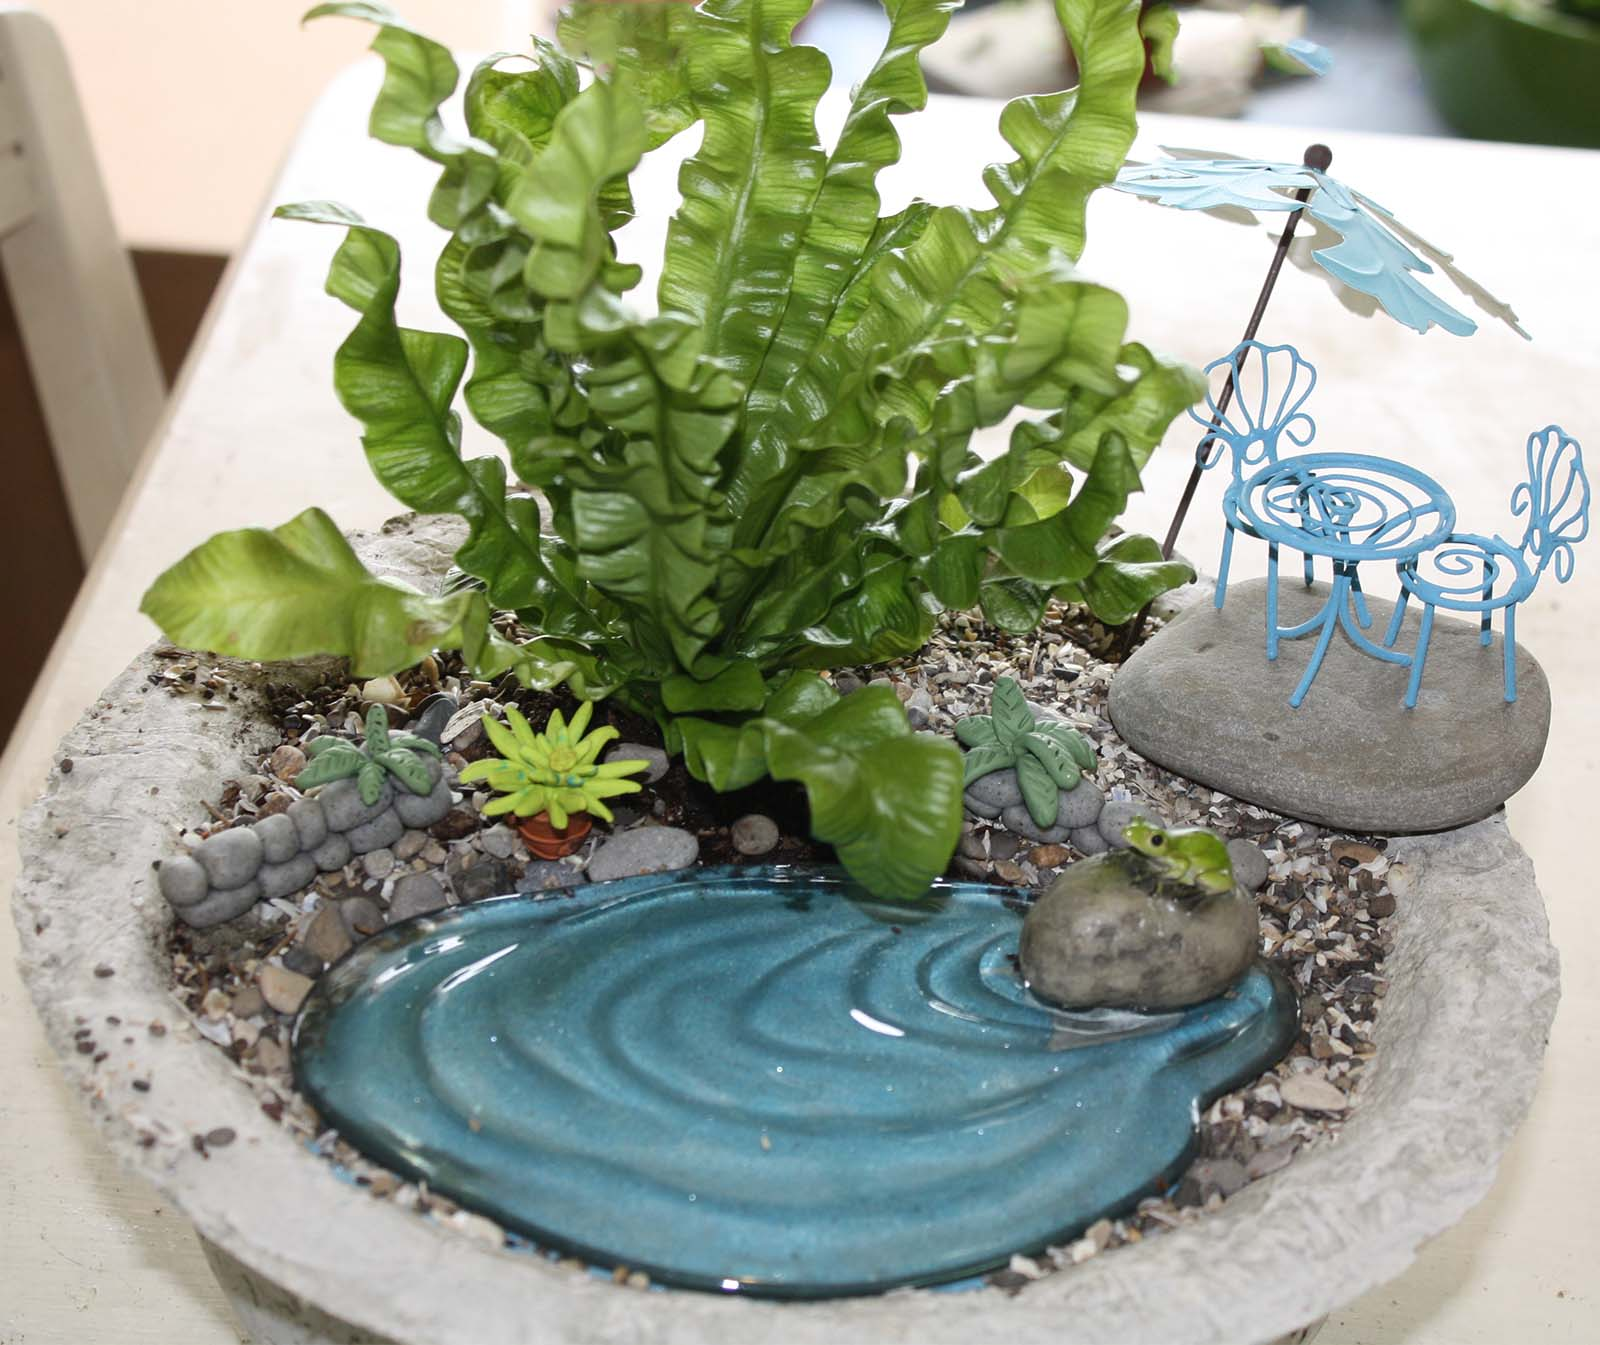 Stunning Fairy Gardens Fairy Garden Fairy Gardens Uk Fairy Gardens Around World Fairy Garden A Papercrete Container Made At Papercrete Class From Leecoates Papercrete garden The Fairy Gardens